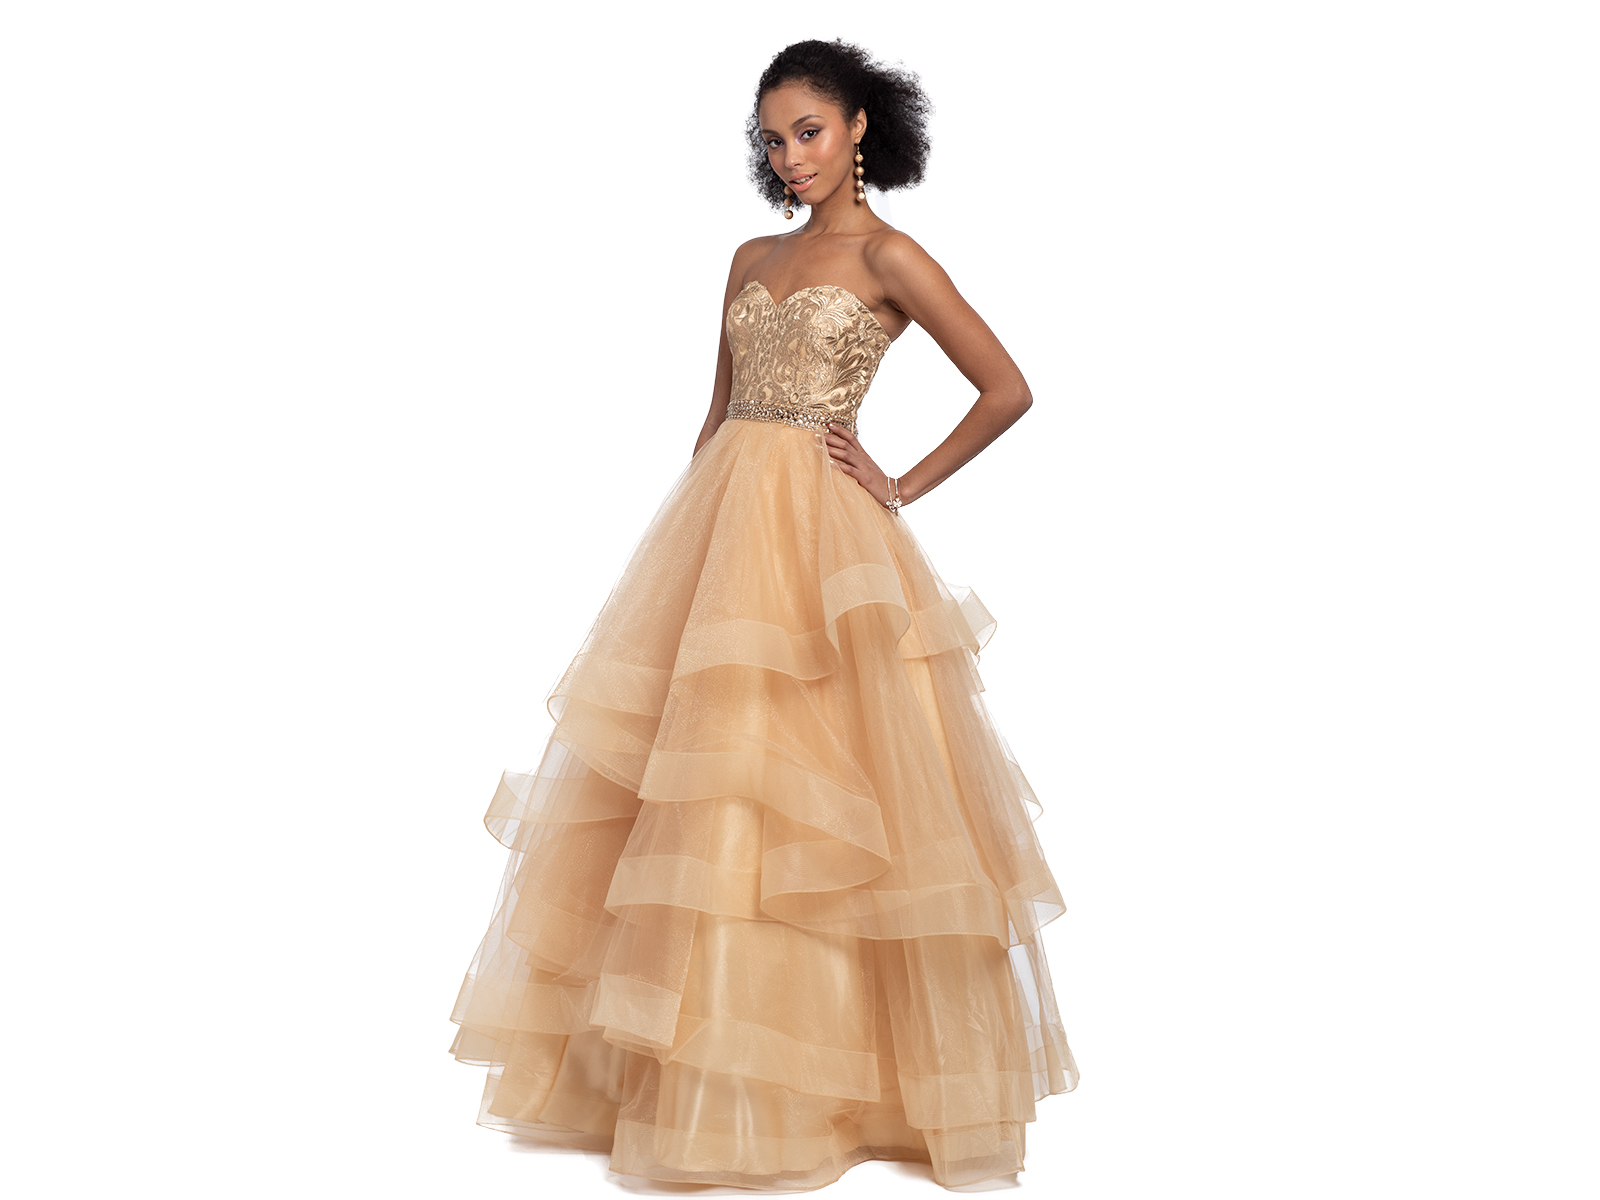 Tiered Prom Dress by Camille La Vie